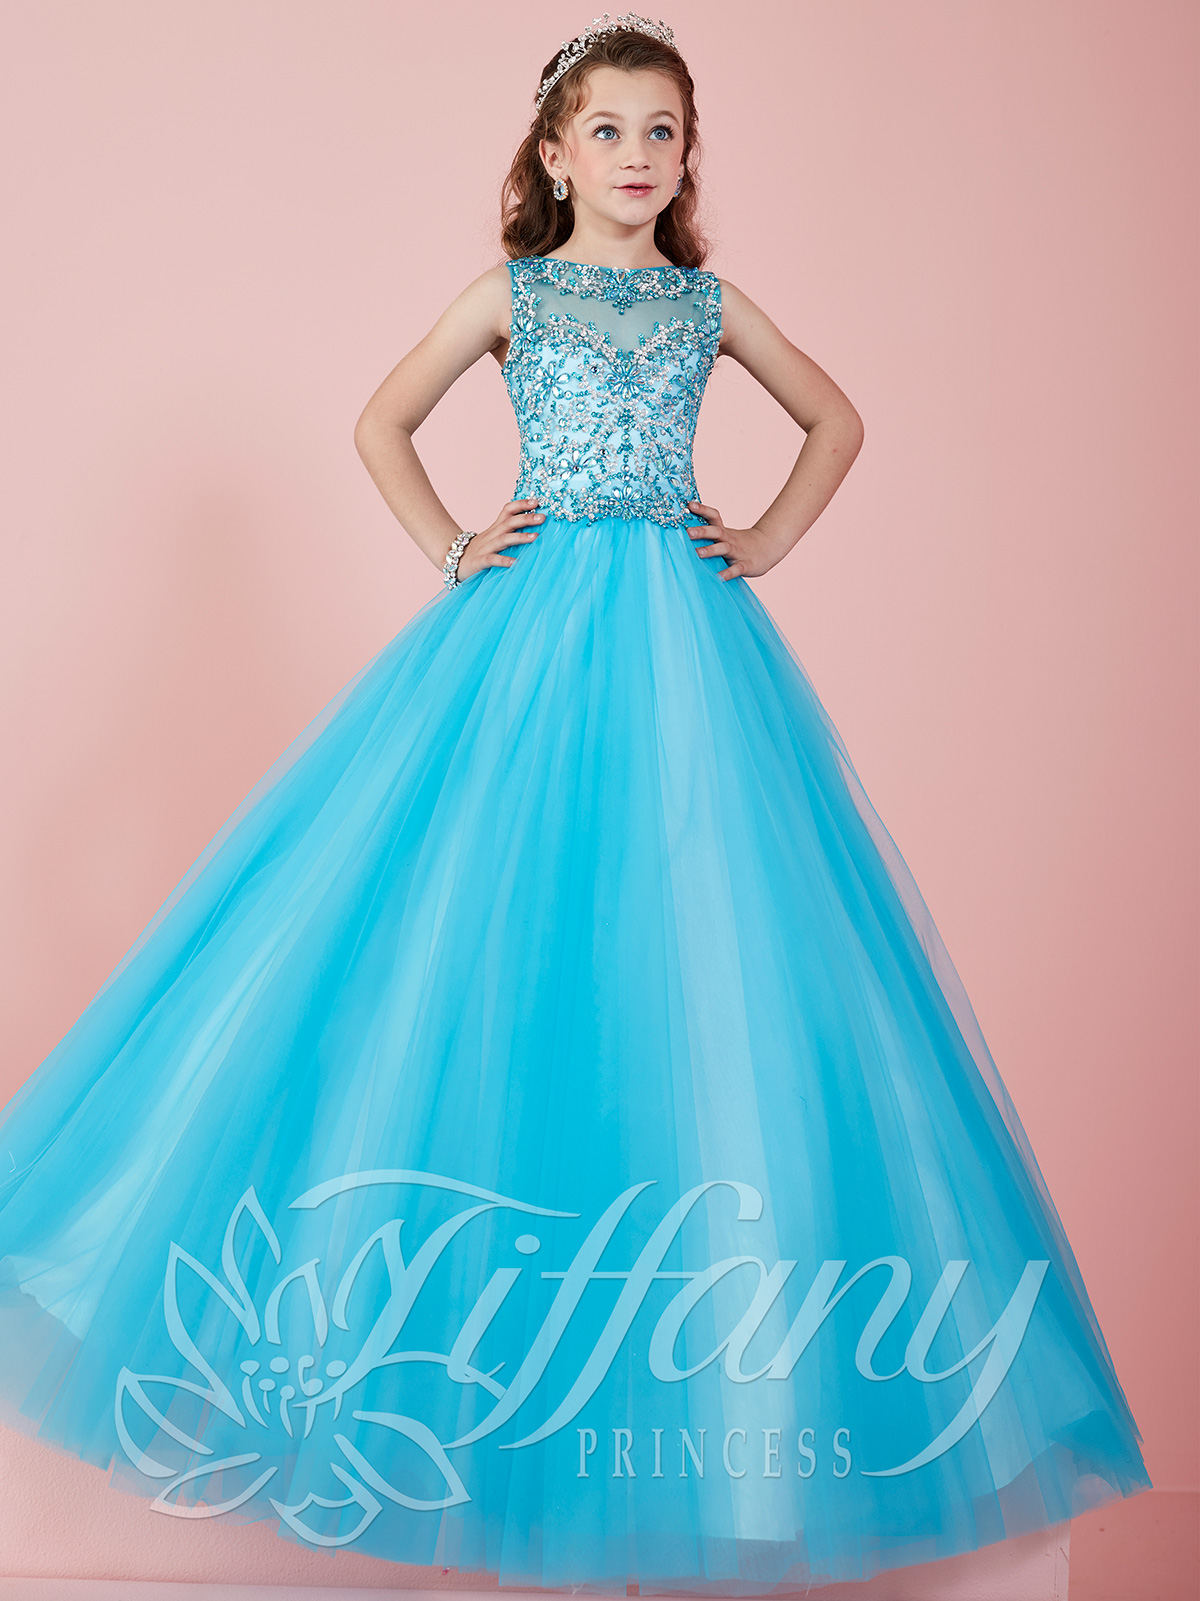 Tiffany Princess 13465 Illusion Neckline Ball Gown Pageant Dress ...